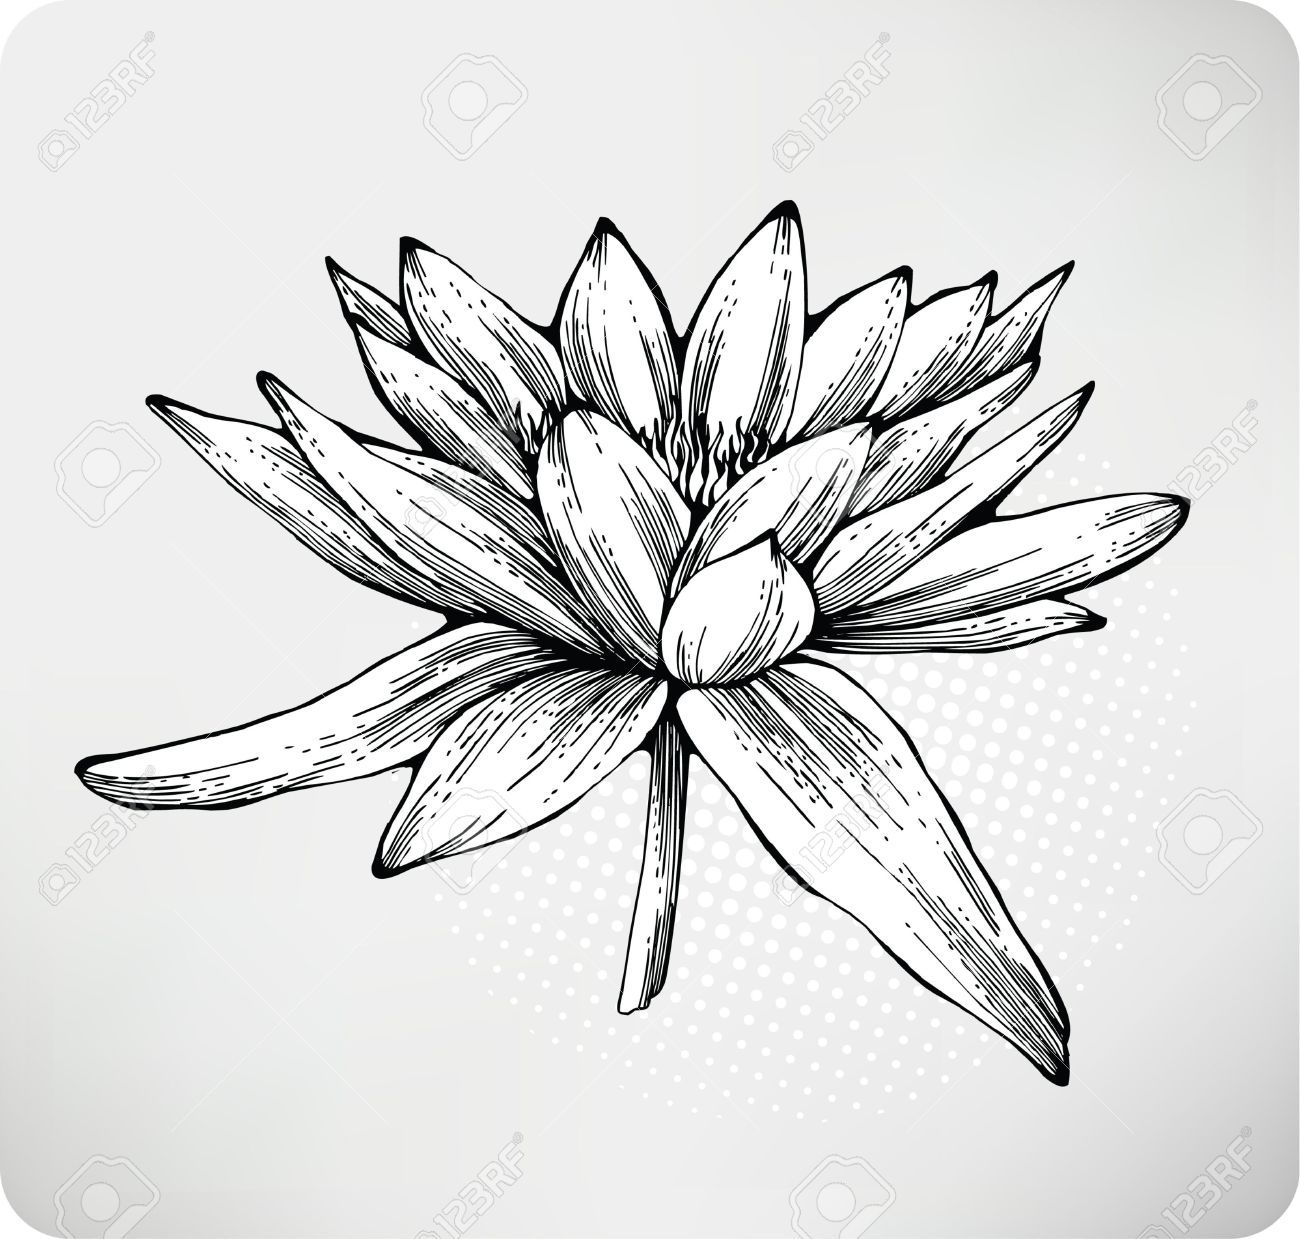 Water Lily Drawing Hledat Googlem Flowers Pinterest Drawings